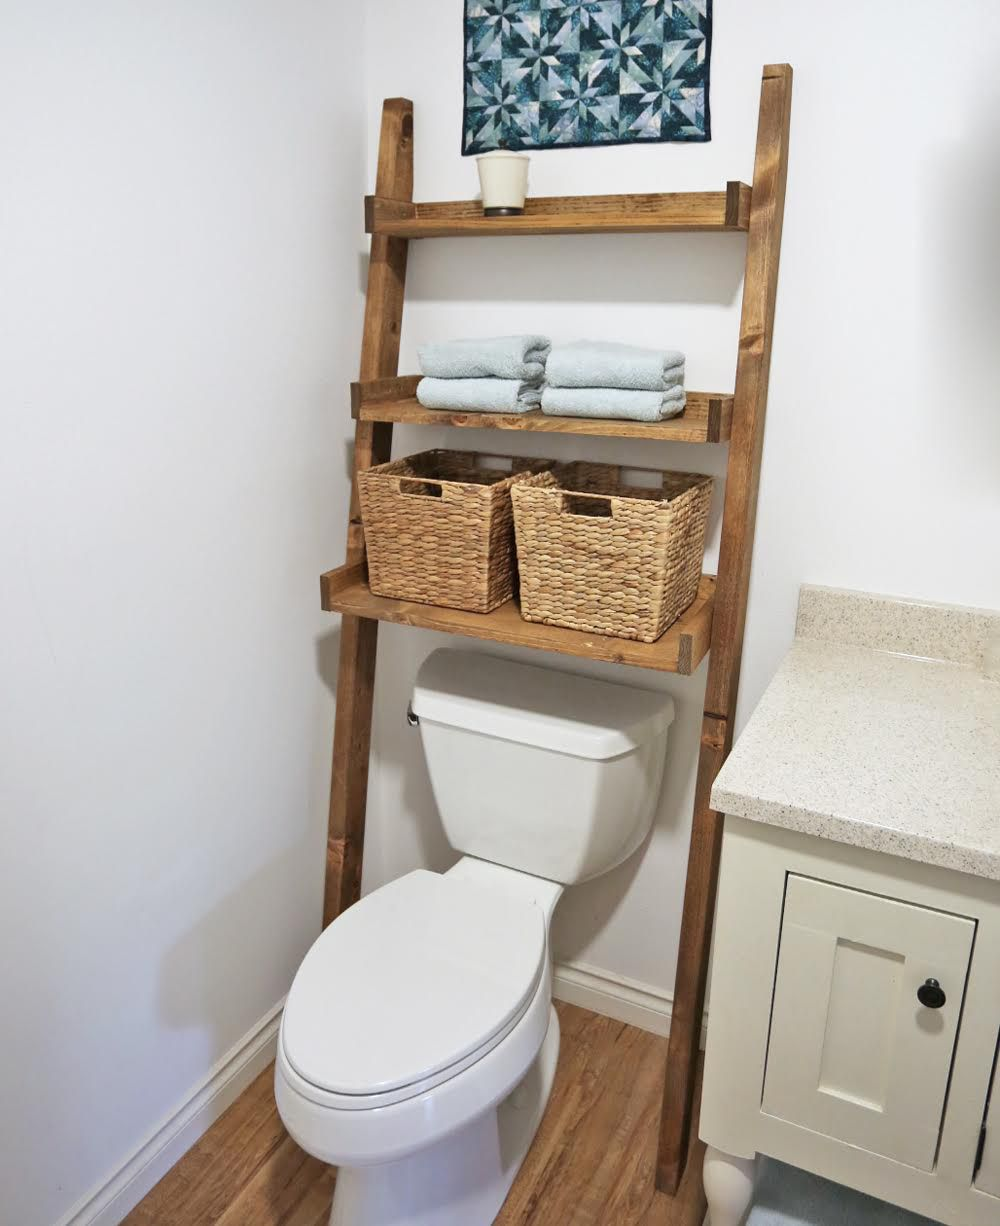 bathroom shelf ideas for more organized home floating shelves white inch deep wood open bookshelves towel rack and desk with above storage ikea besta brick fireplace mantle